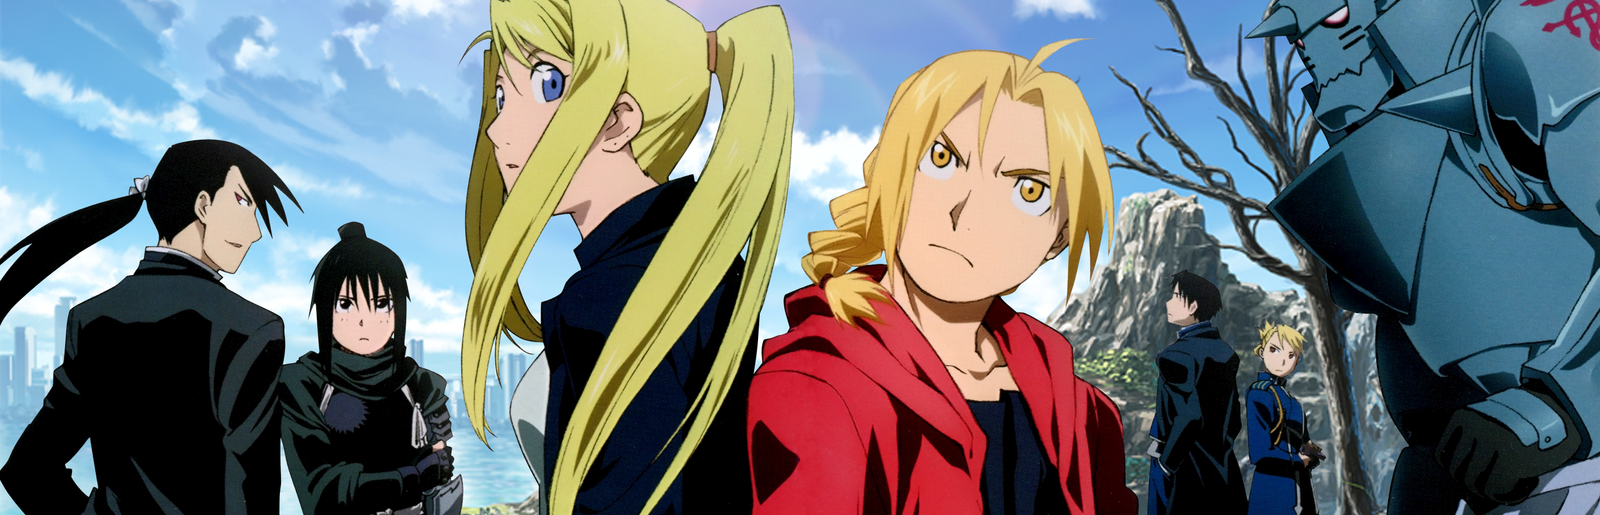 Fullmetal Alchemist: Brotherhood – Rewatch #14